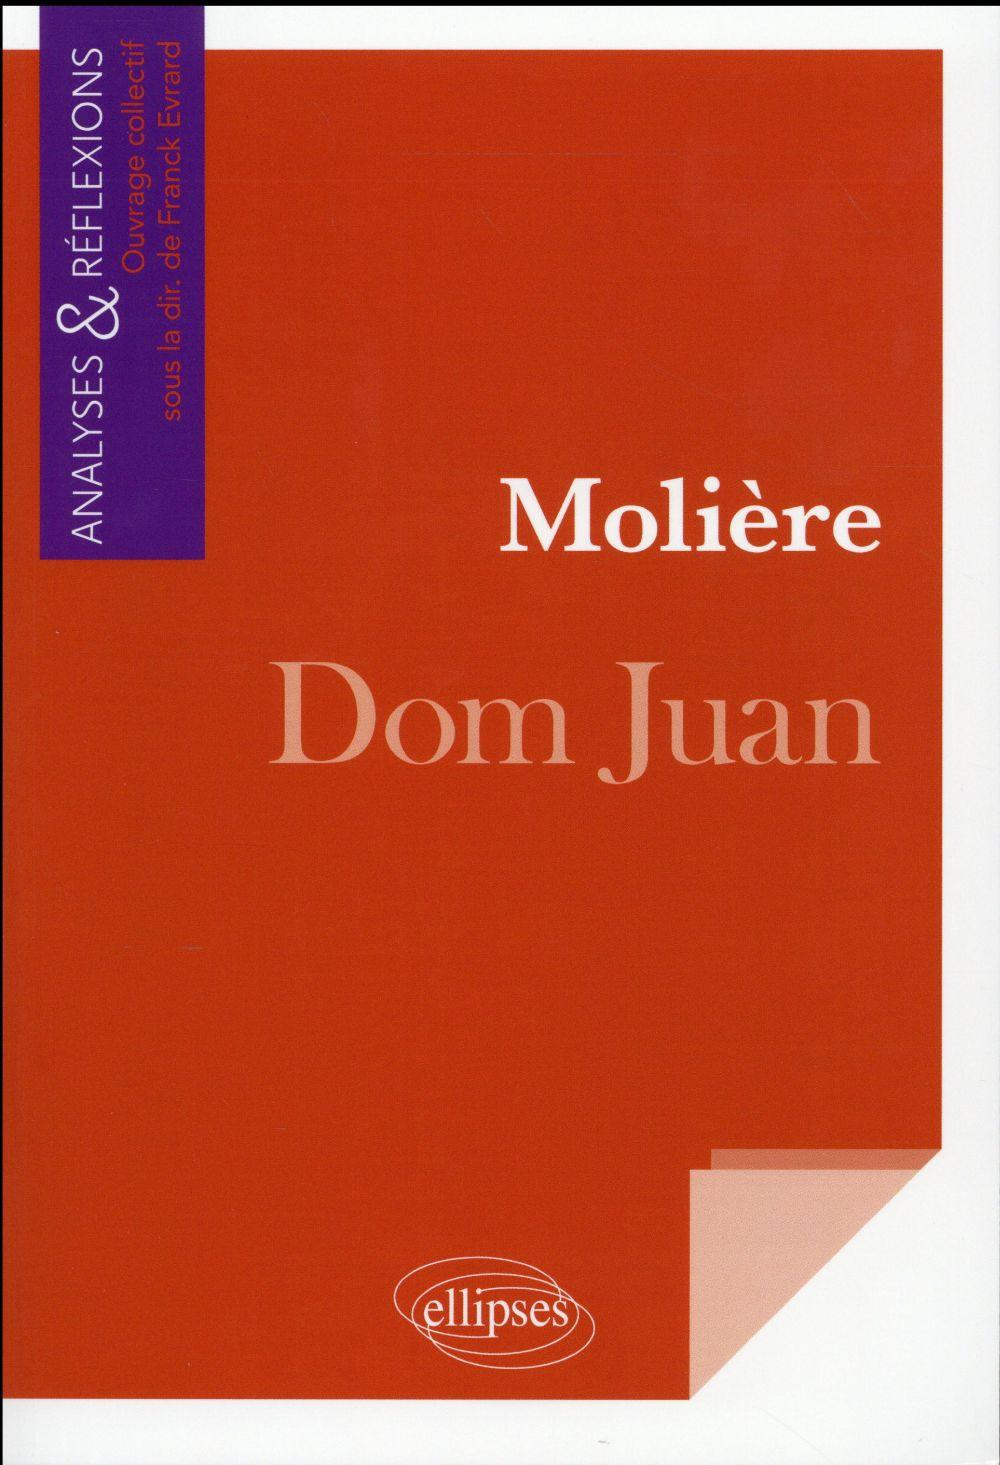 Moliere Dom Juan  - Collectif